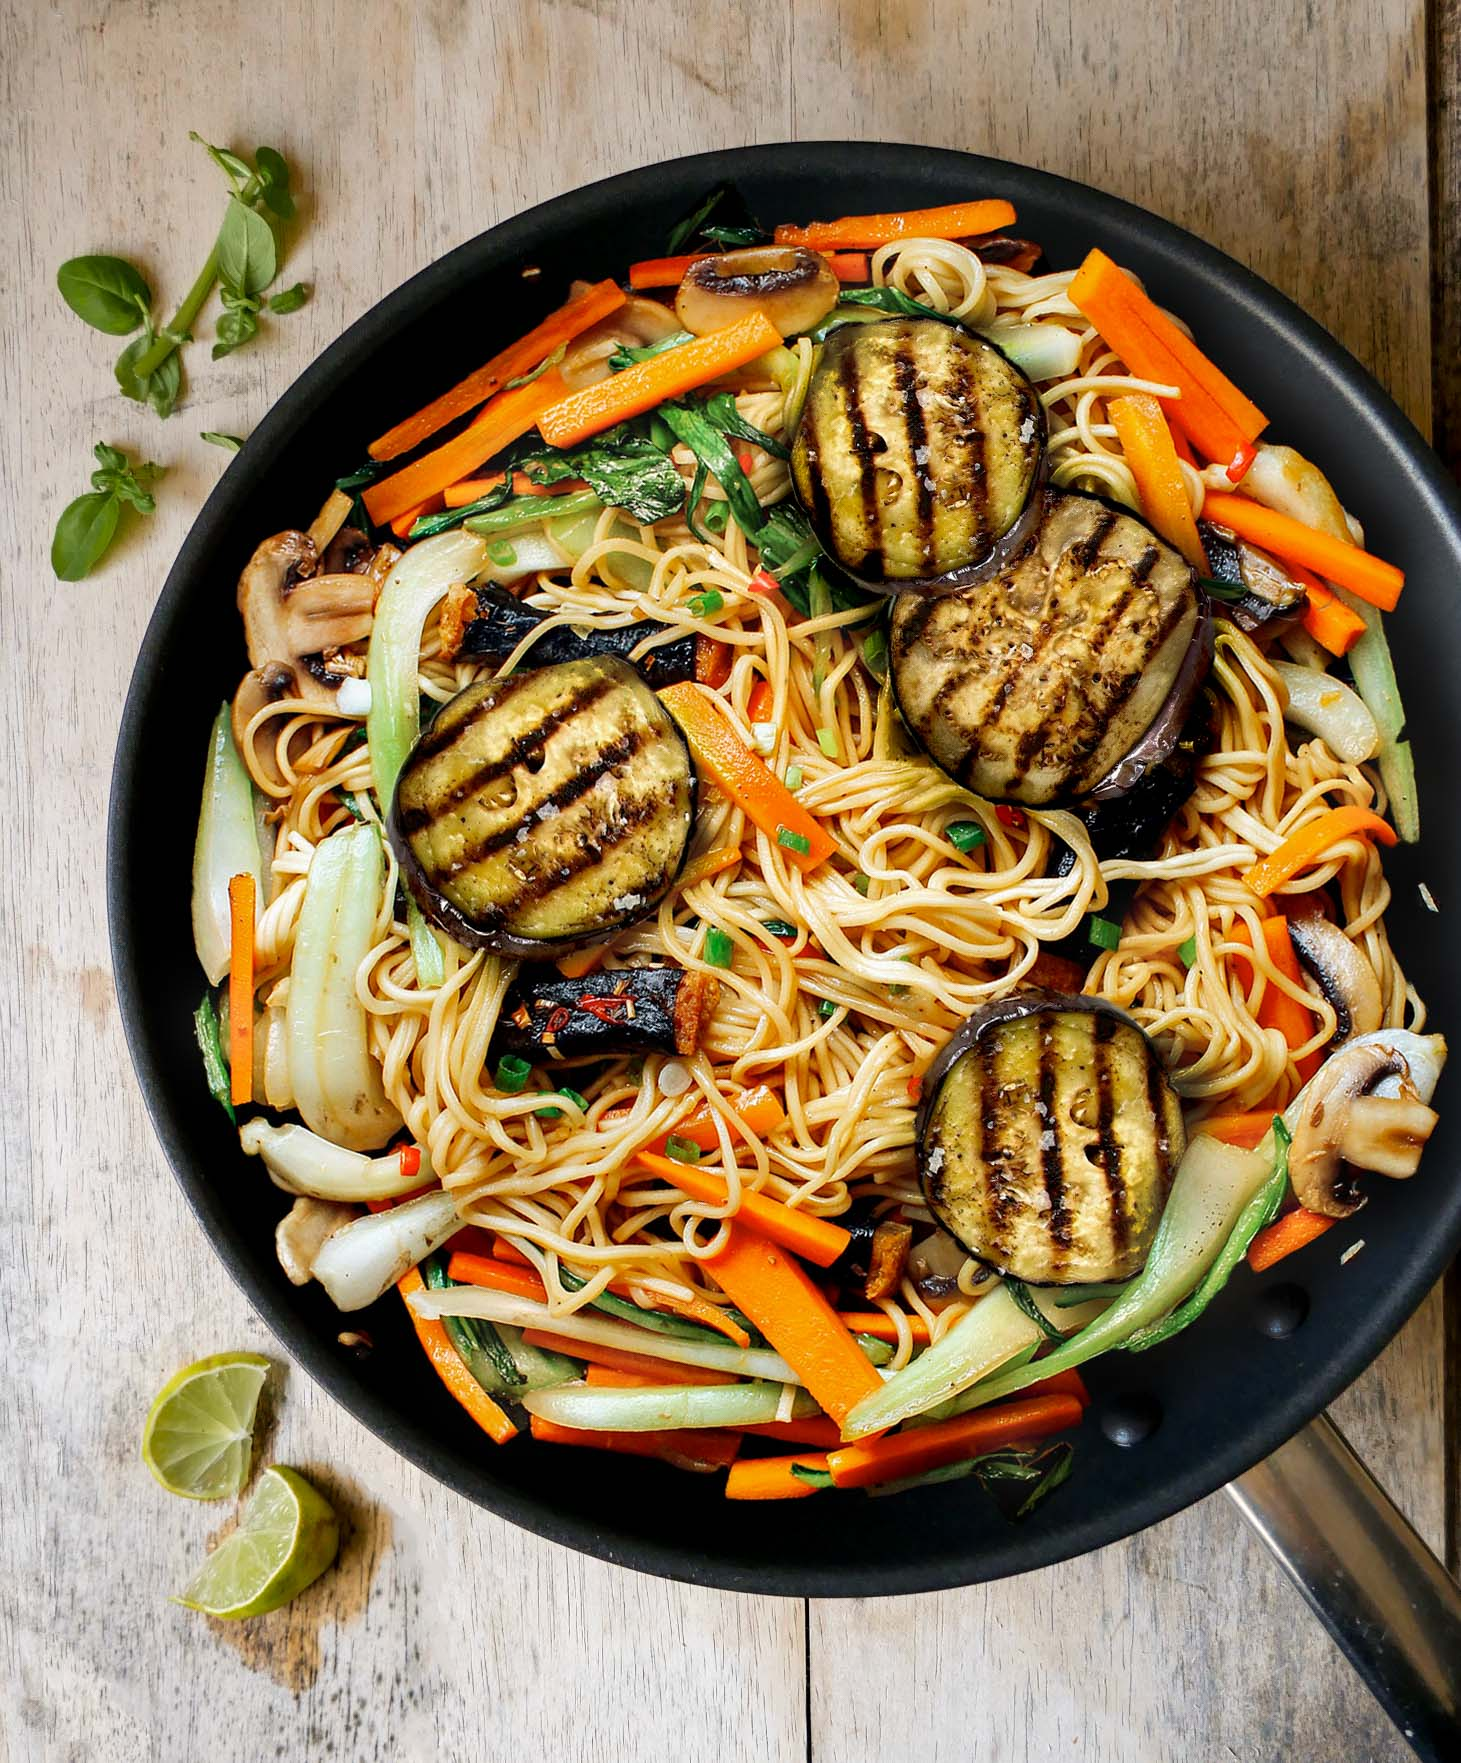 Stir Fried Noodles With Vegetables Easy Vegan Recipe